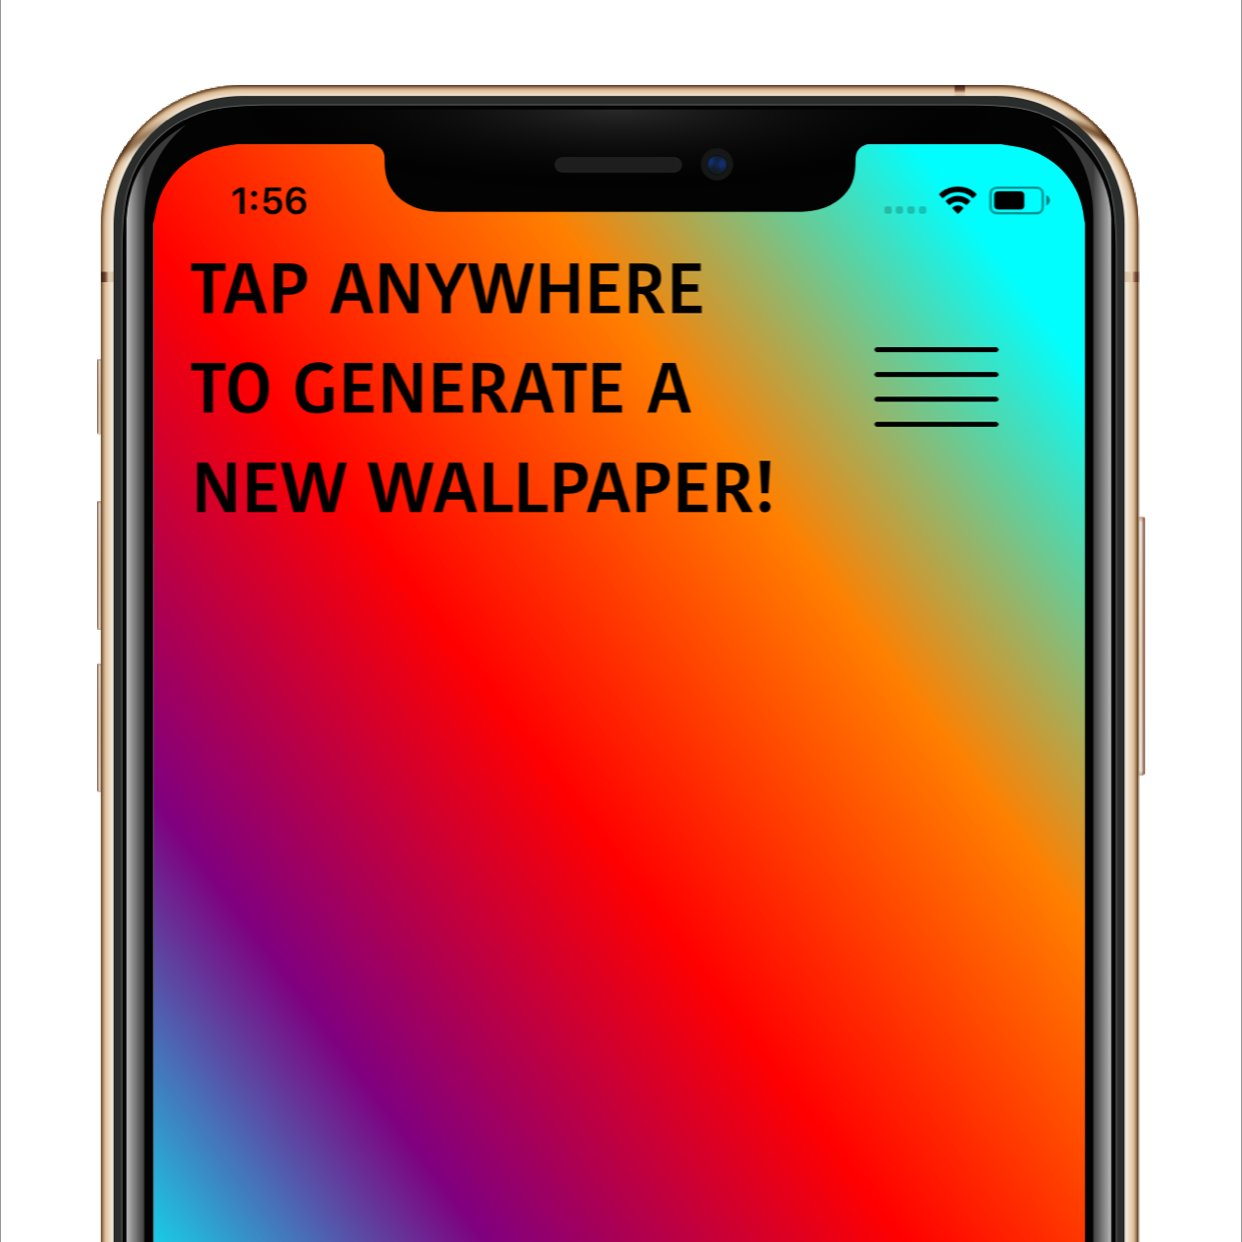 Infinity Wall (iPhone App)